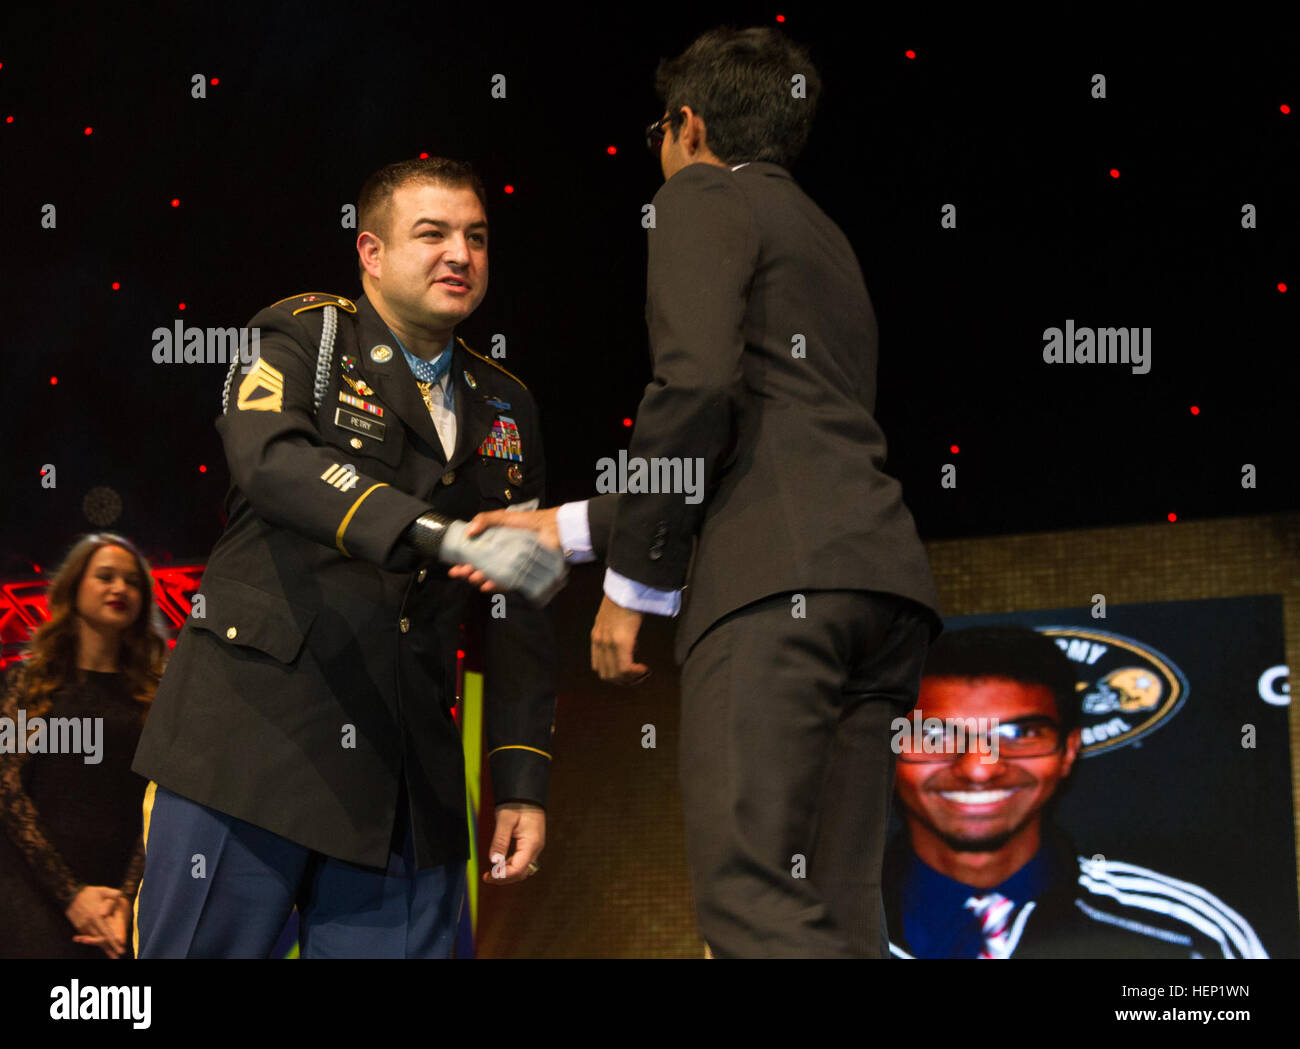 Retired Master Sgt. and Medal of Honor recipient Leroy A. Petry shakes hands with Prashant Chakradhar, Murray High - Stock Image